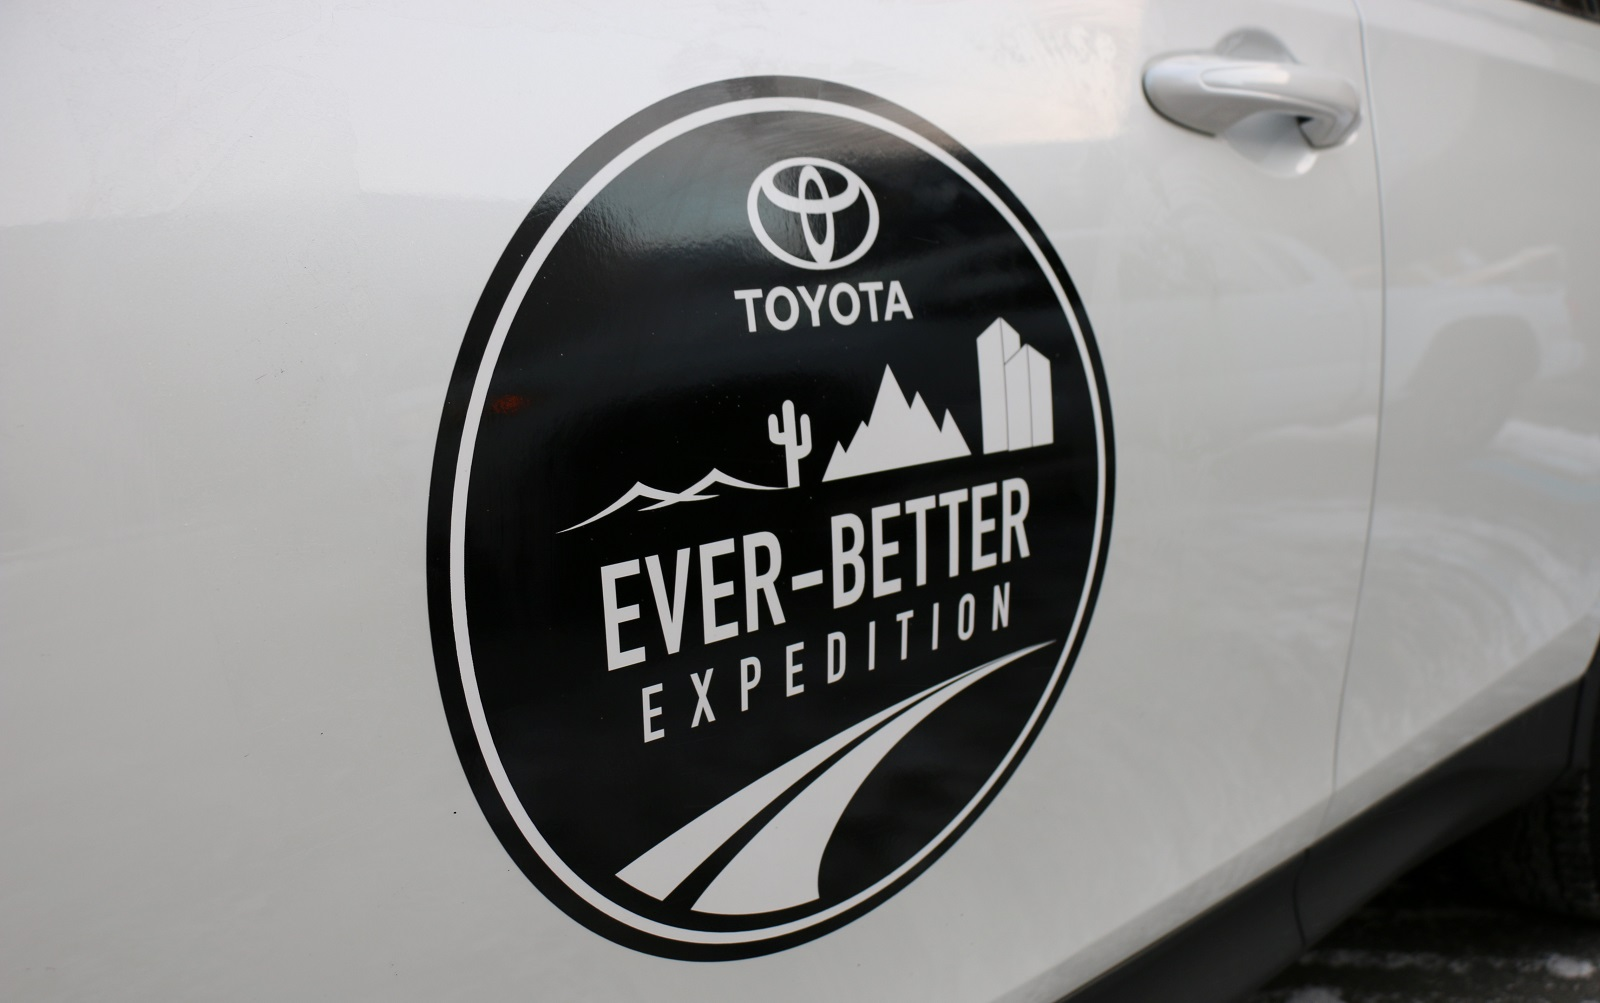 Toyota Ever-better Expedition